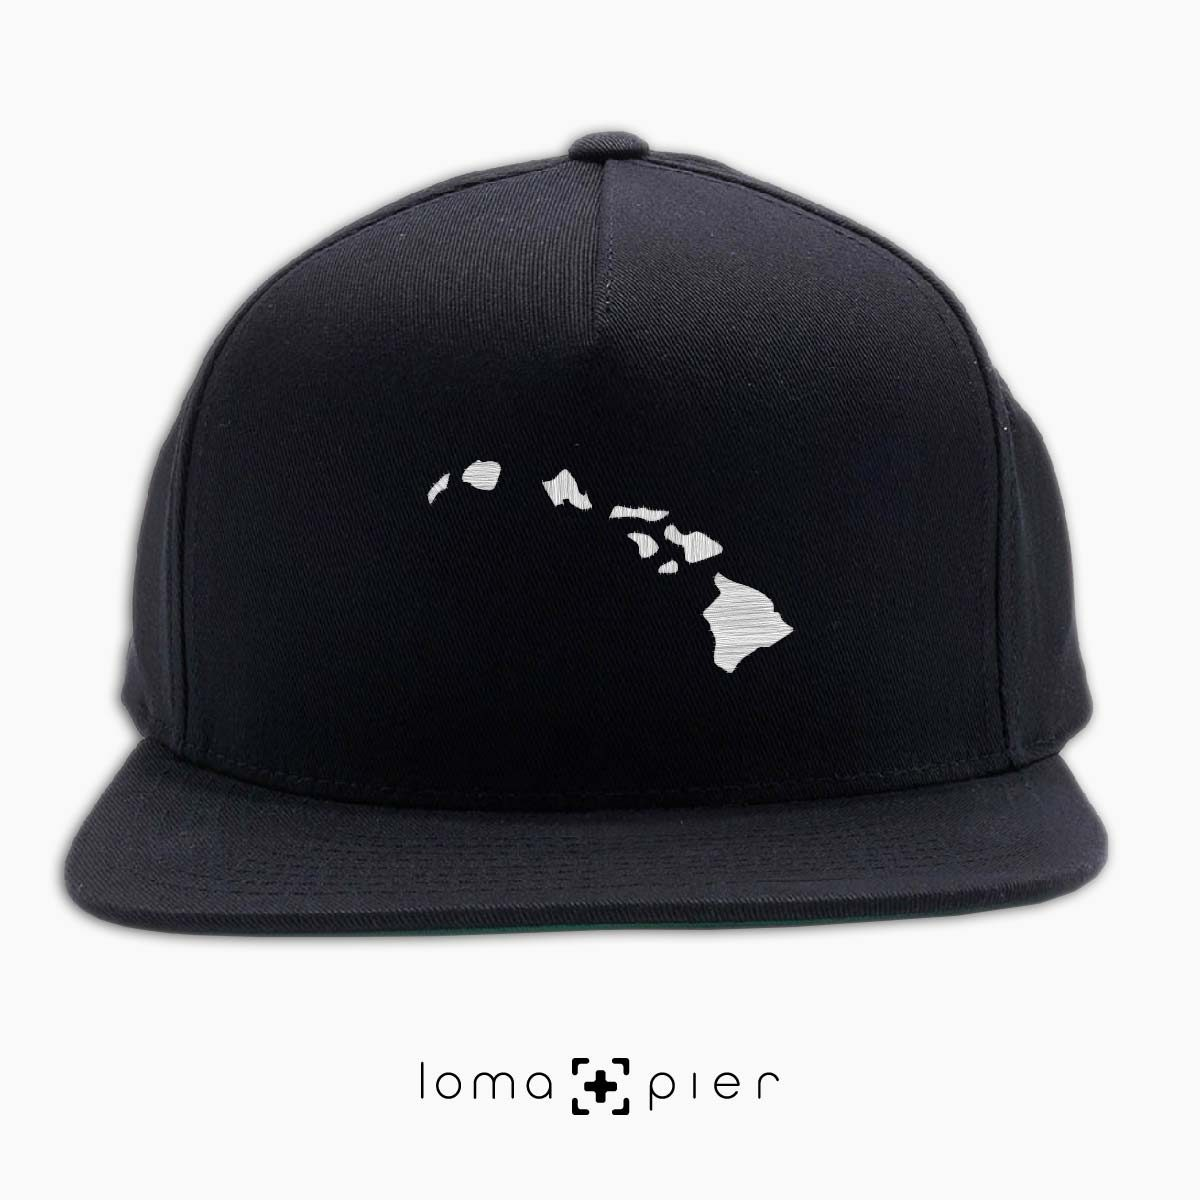 HAWAIIAN ISLANDS icon embroidered on a black classic snapback hat by loma+pier hat store